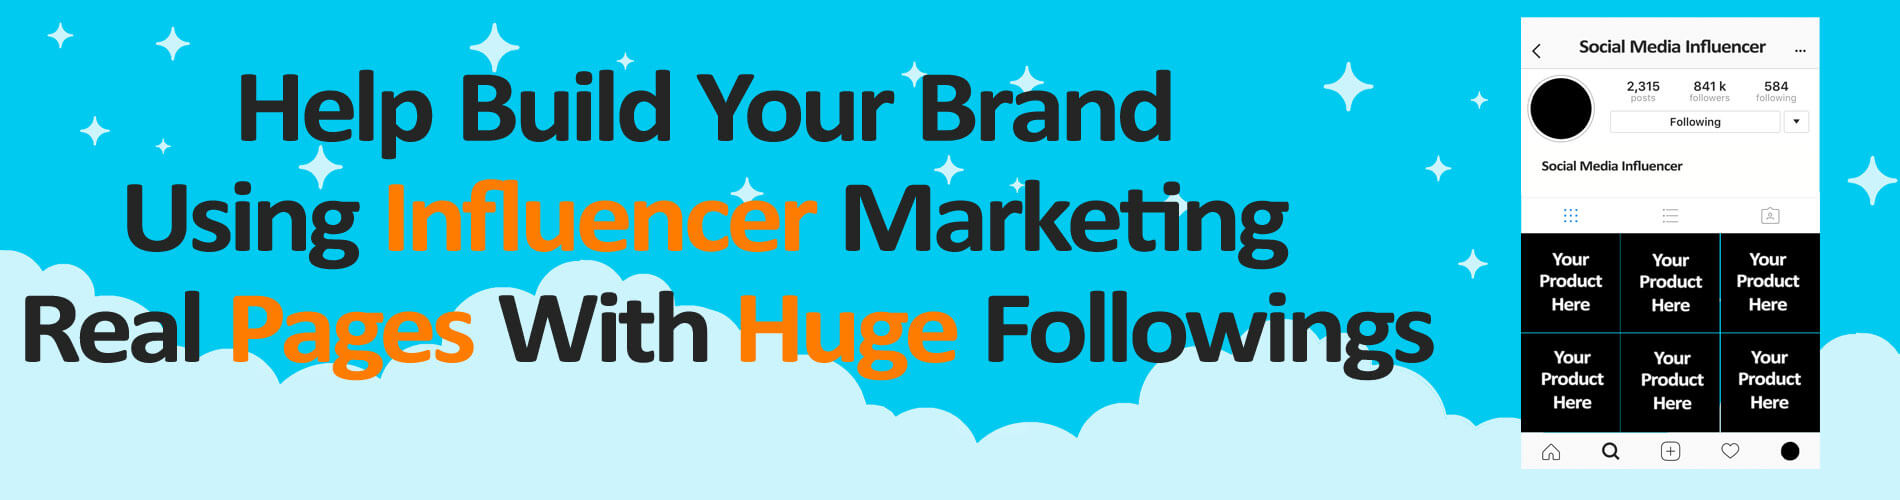 NGITC_Banner_Influencer_Marketing